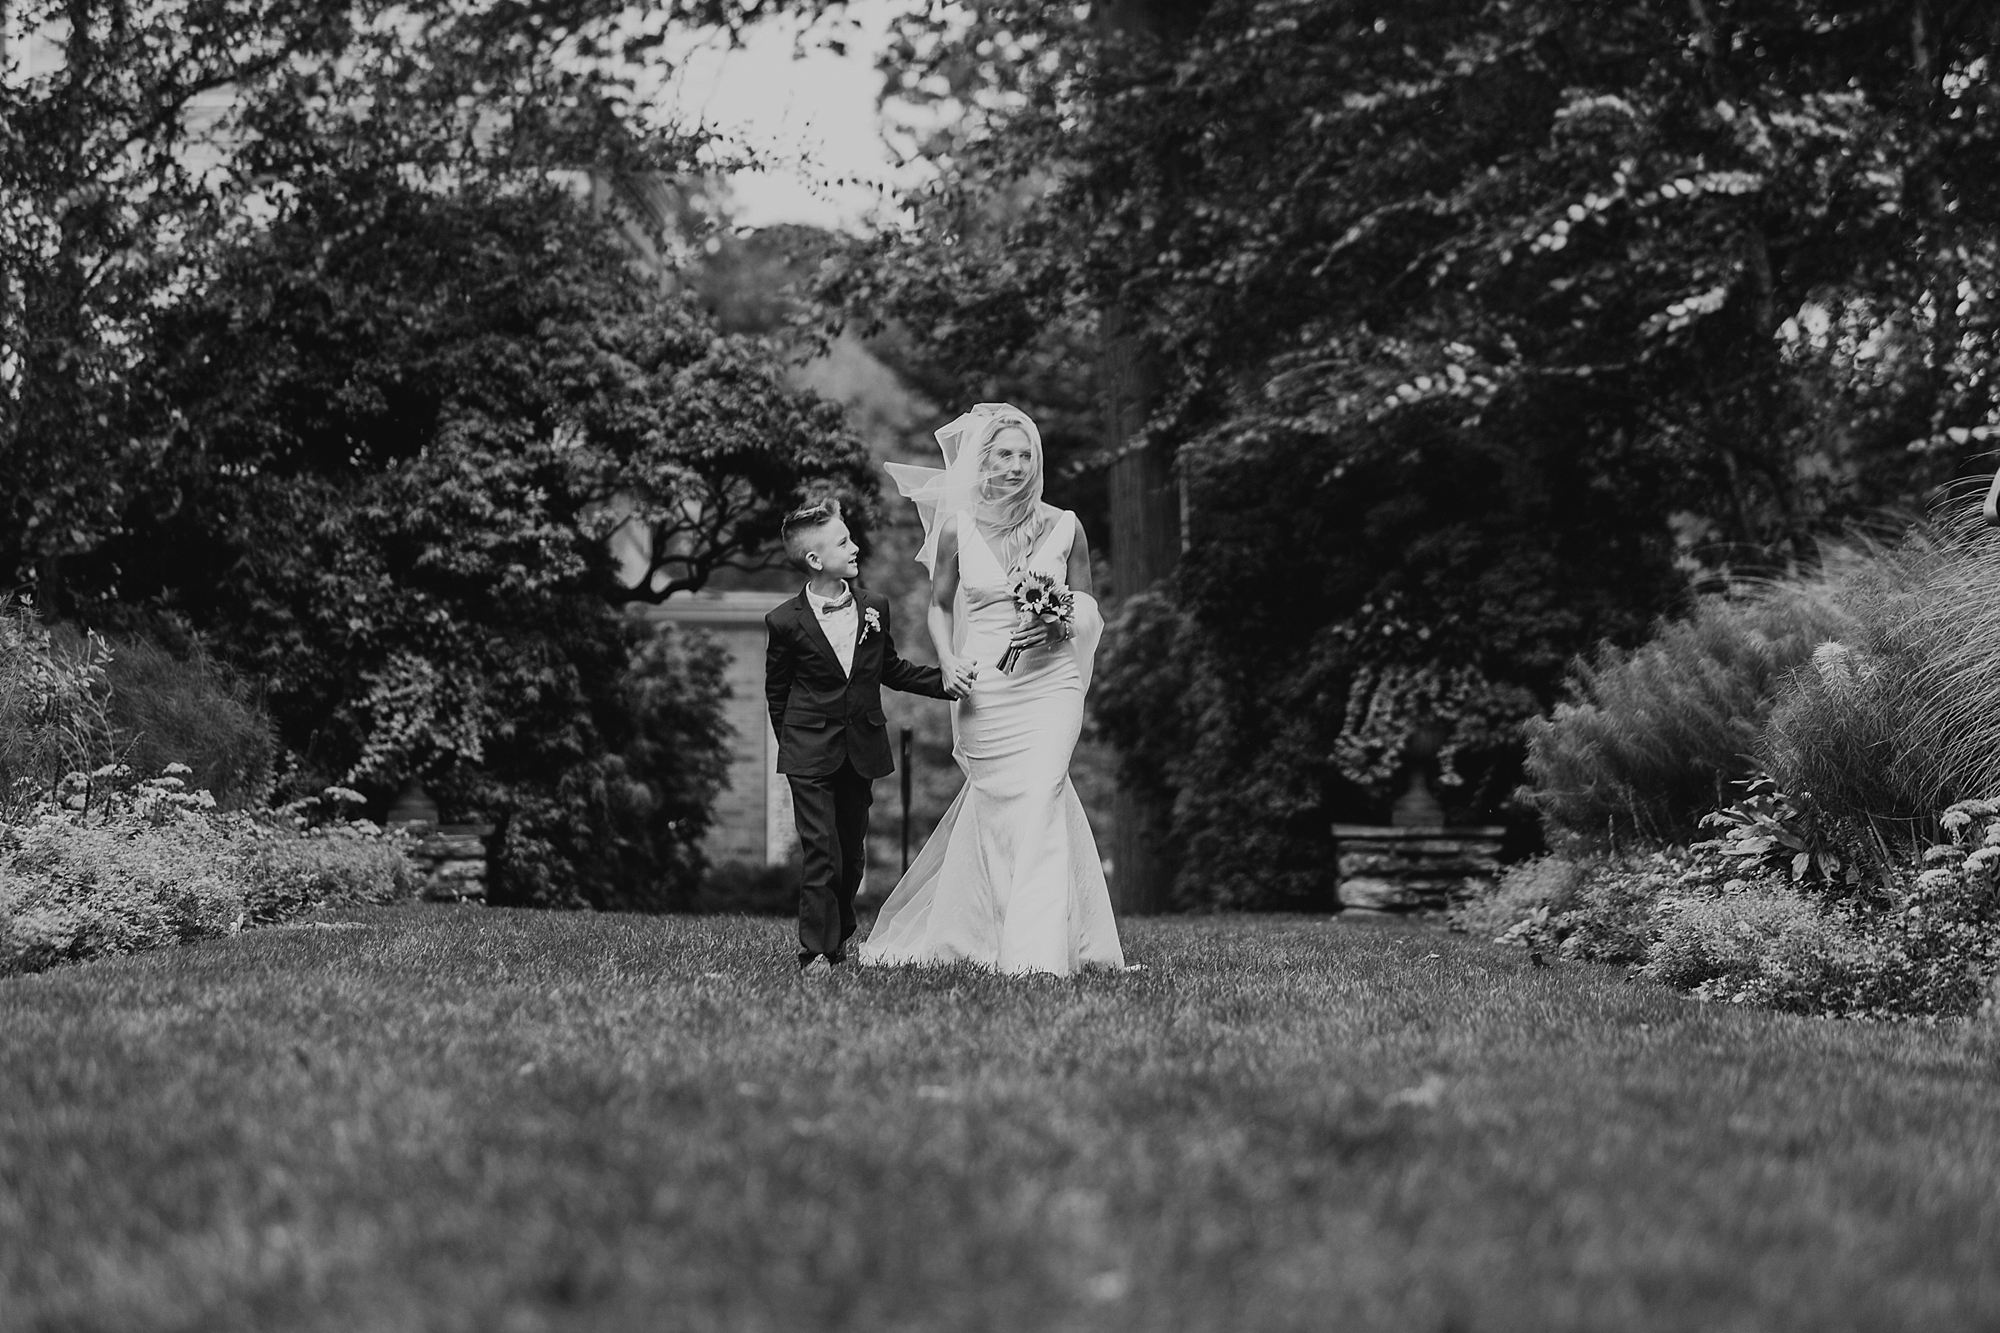 Druemore_Joe_Mac_Creative_Philadelphila_Wedding_Photography_drumore_estate_pequea_Best_lancaster_wedding_venues_0030.jpg